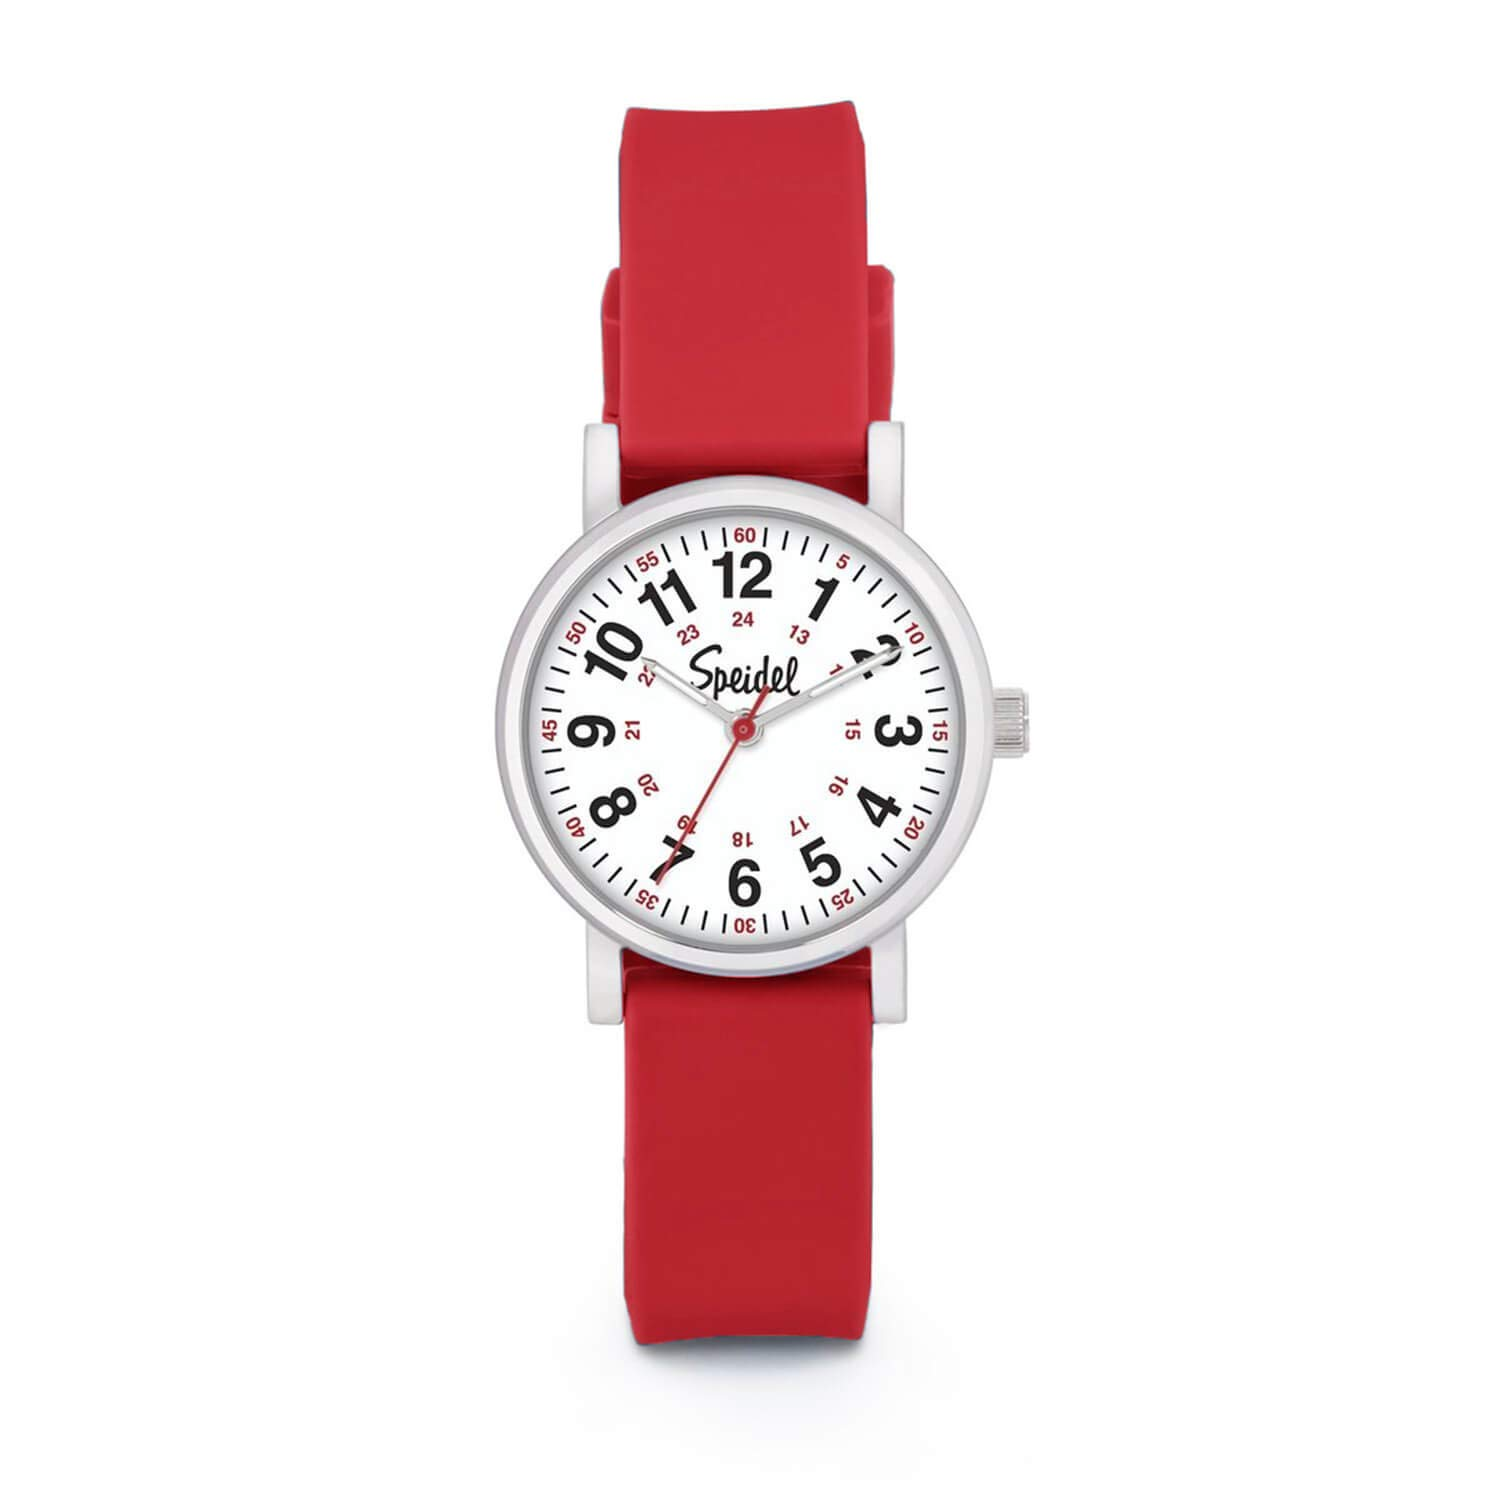 Speidel Women's Scrub Petite Watch for Medical Professionals - Easy to Read Small Face Luminous Hands Silicone Band Second Hand Military Time for Nurses Doctors Students in Scrub Matching Colors